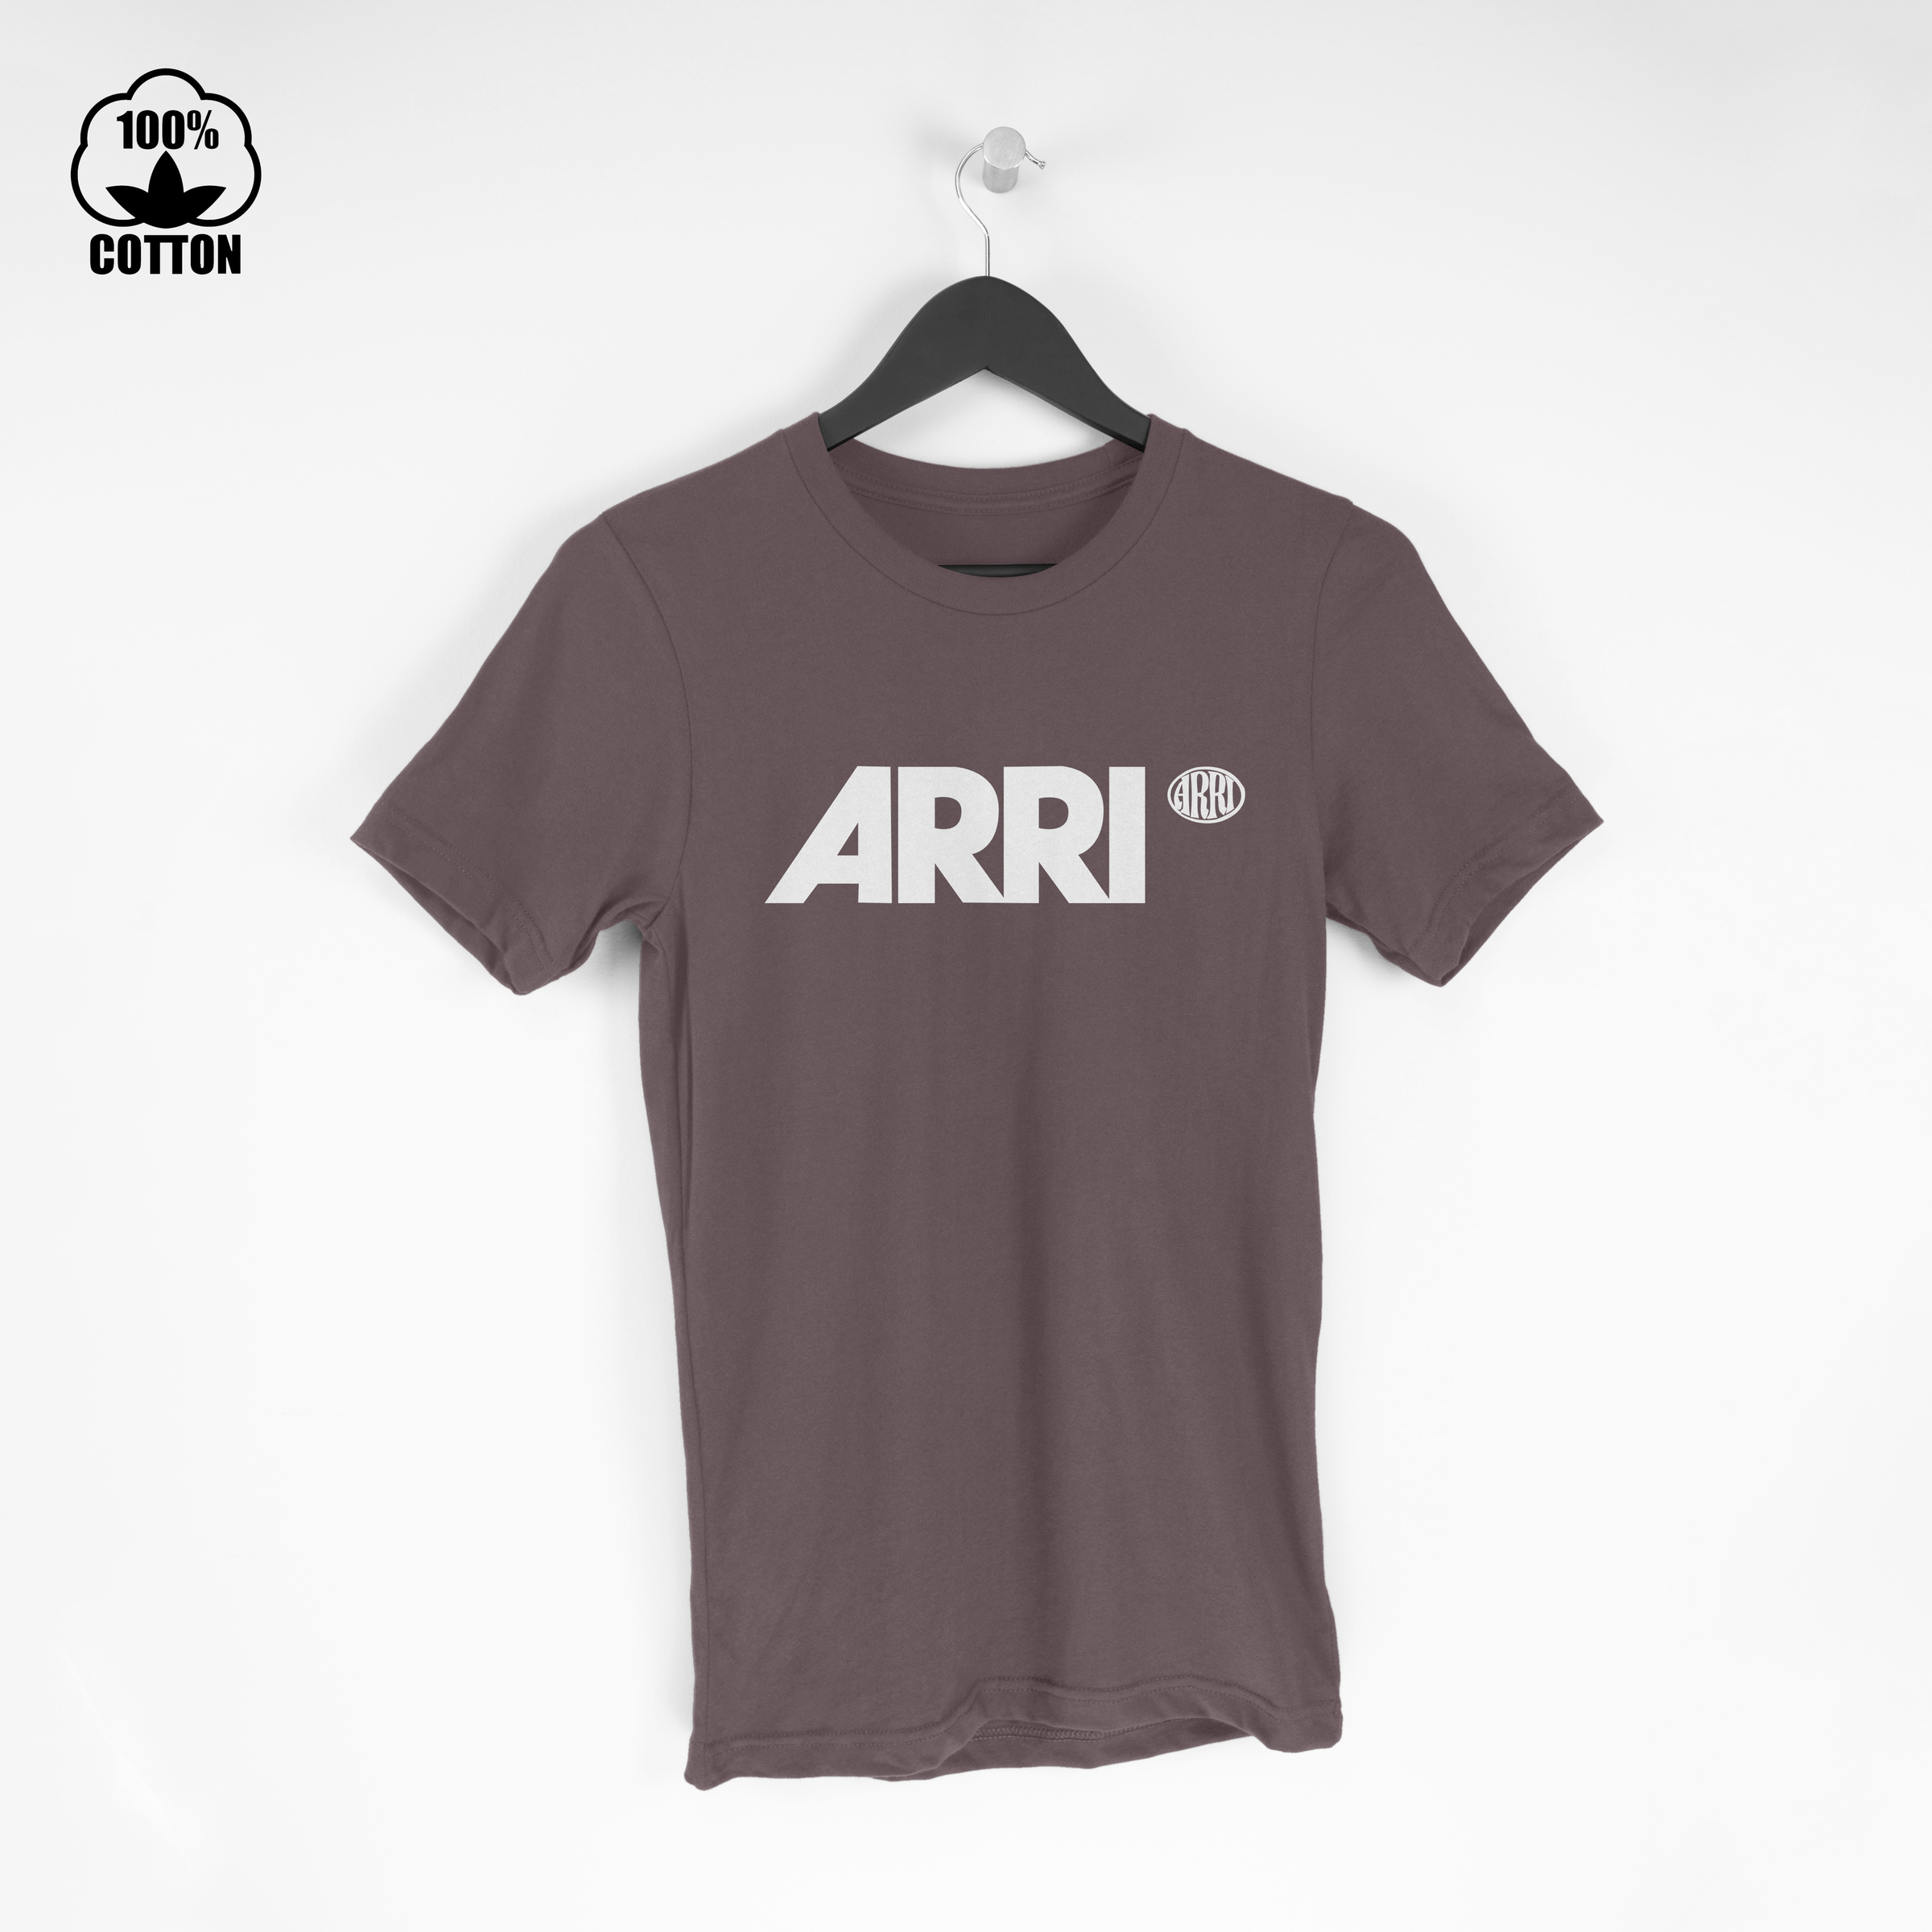 Arri Inspiring Your Vision Small Logo New Mens Tshirt Tee Size S-XXL SaddleBrown.jpg